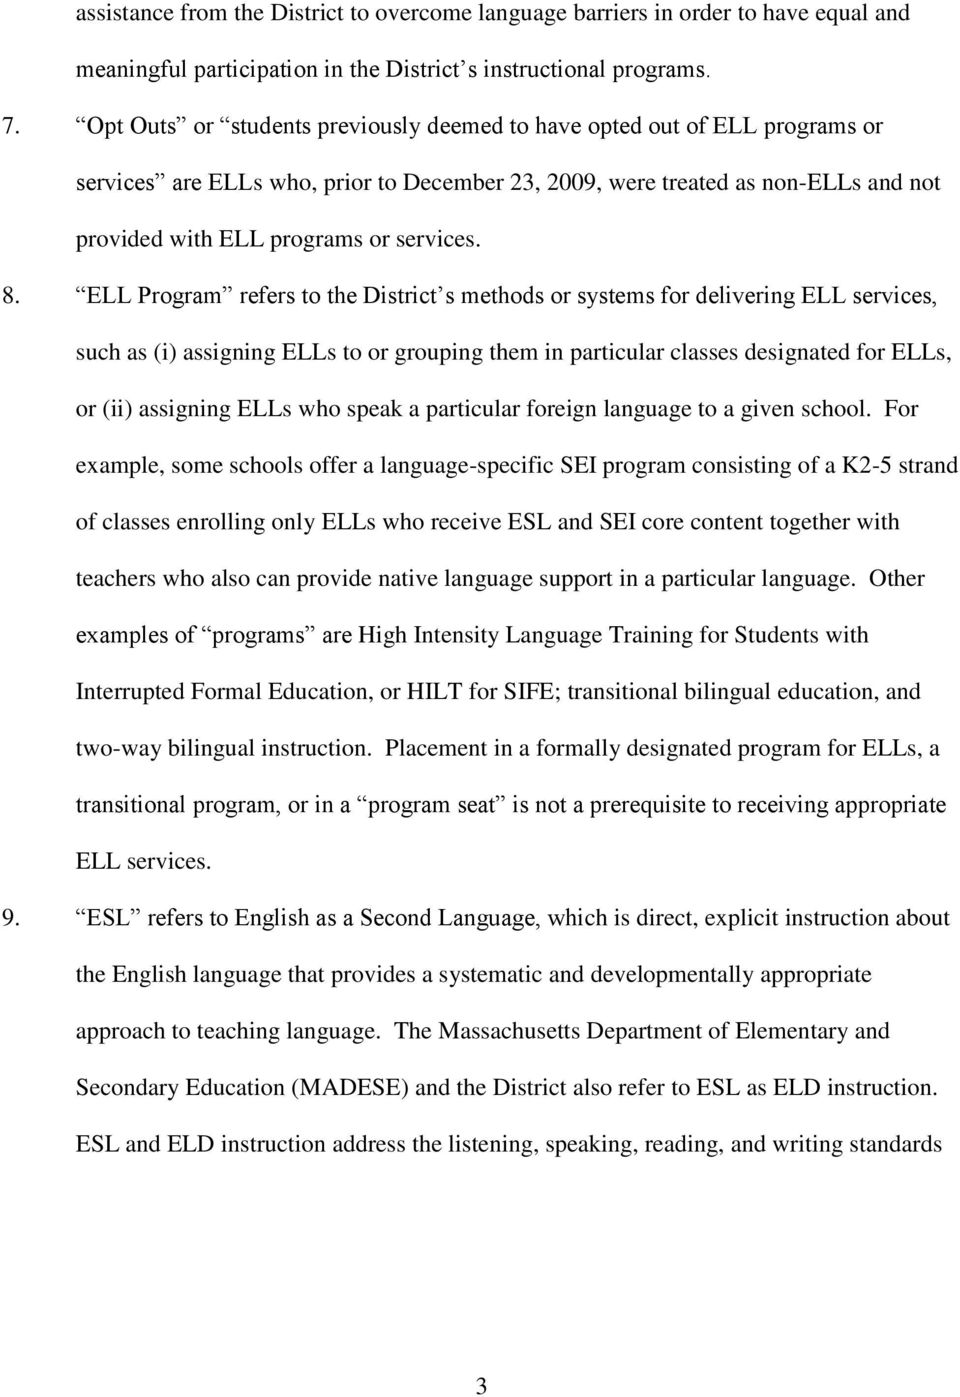 8. ELL Program refers to the District s methods or systems for delivering ELL services, such as (i) assigning ELLs to or grouping them in particular classes designated for ELLs, or (ii) assigning